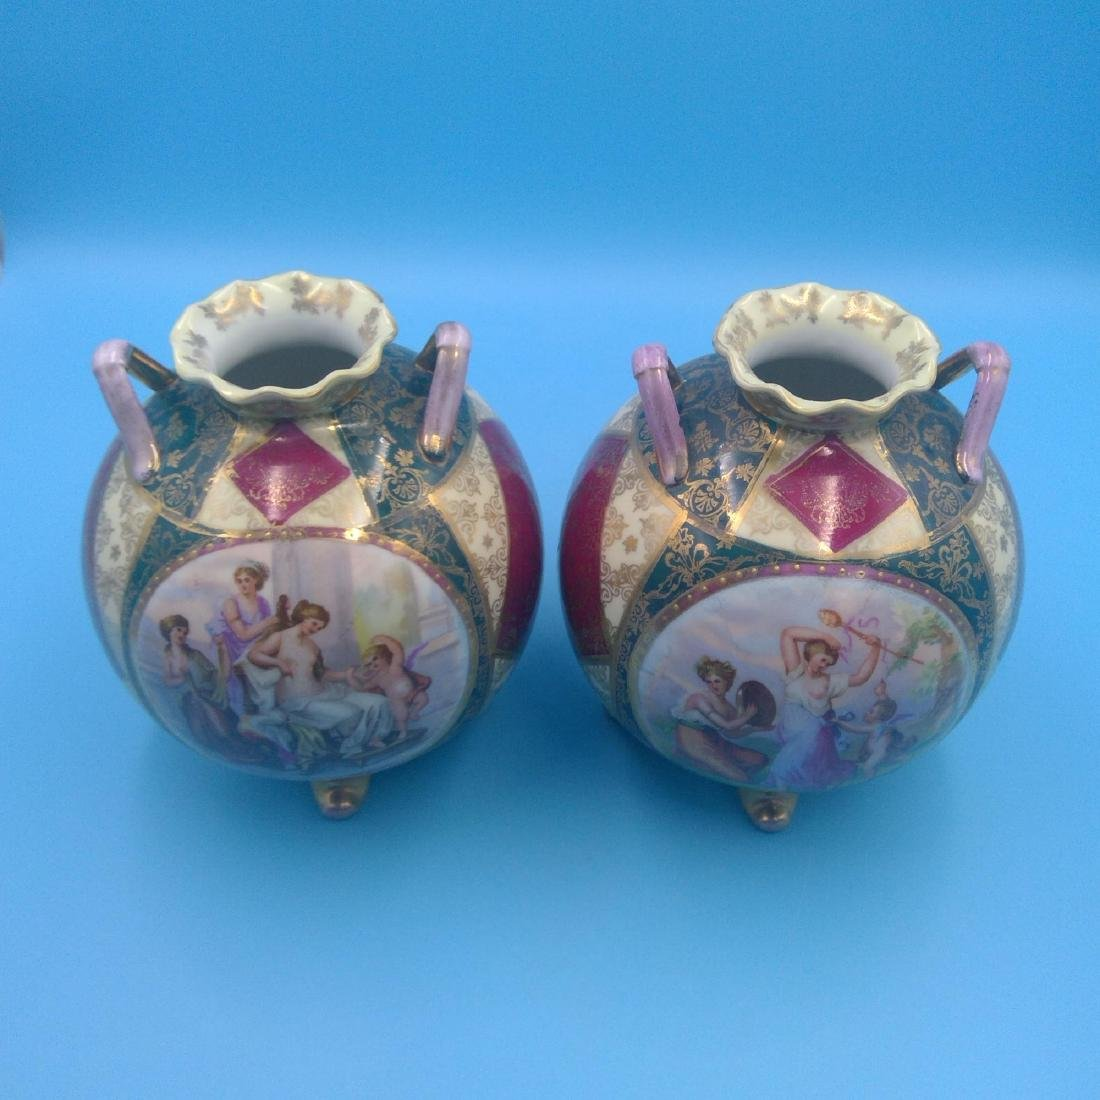 PAIR OF ROYAL VIENNA KAUFMANN SCENERY VASES - 6